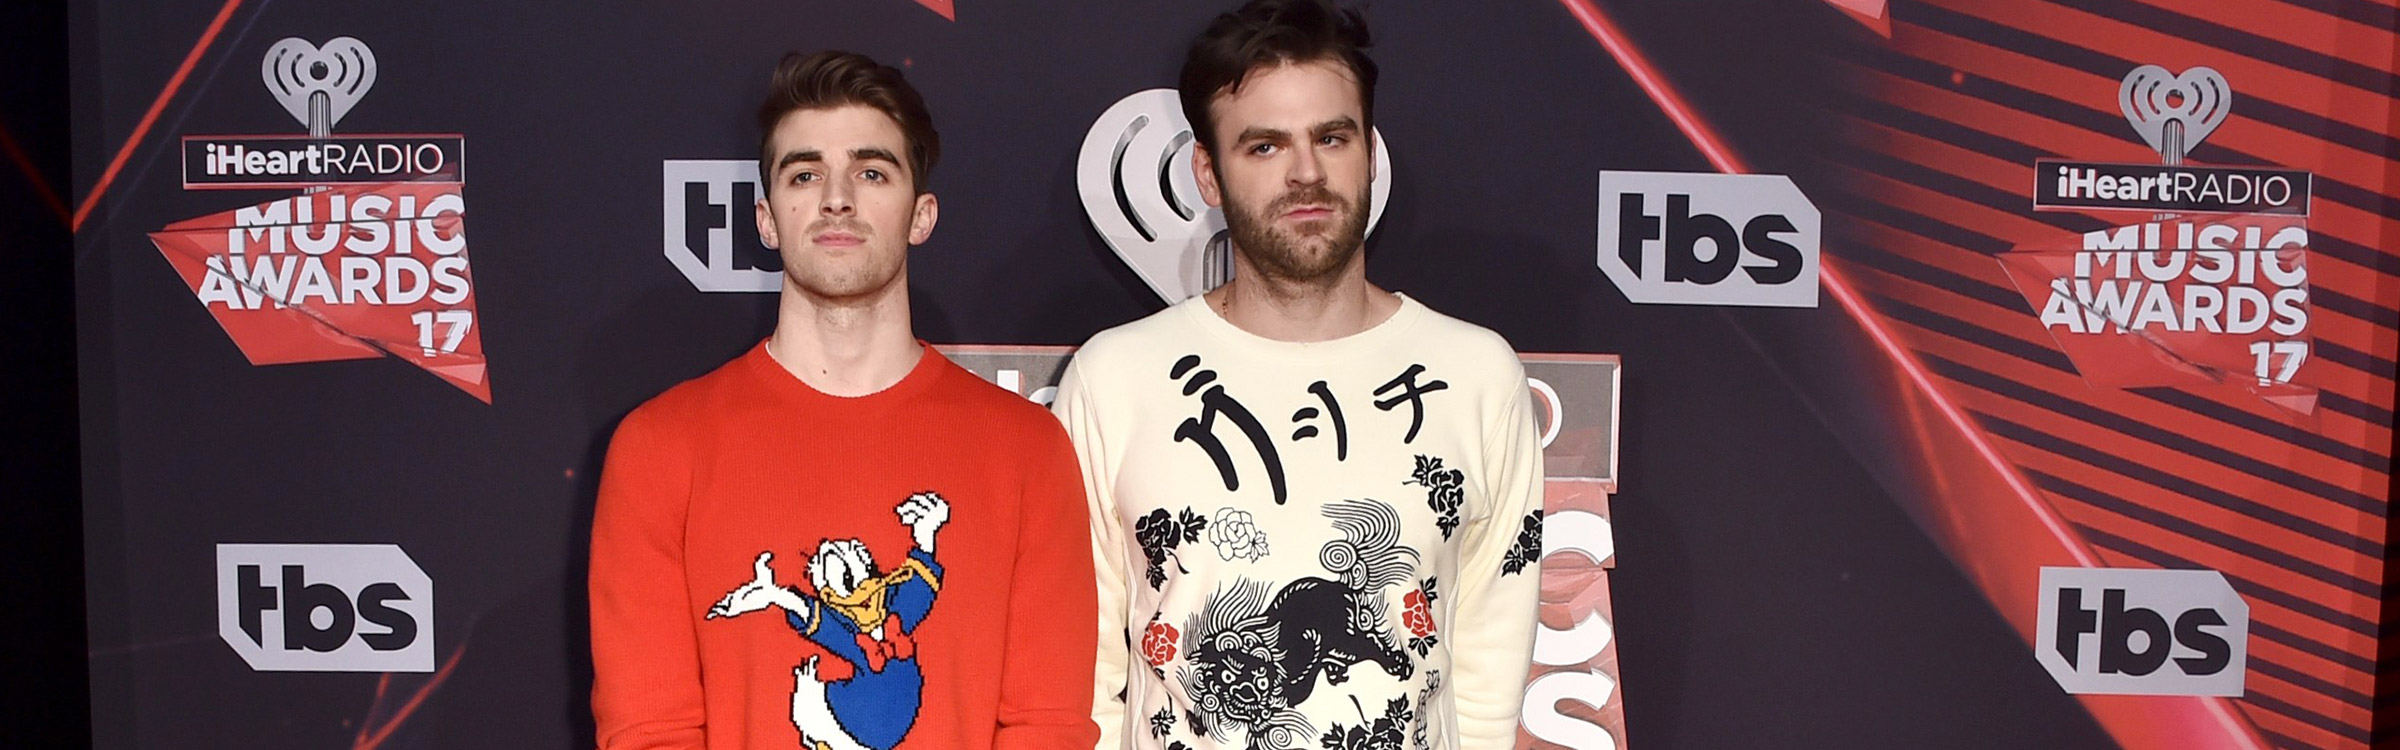 Headertje chainsmokers